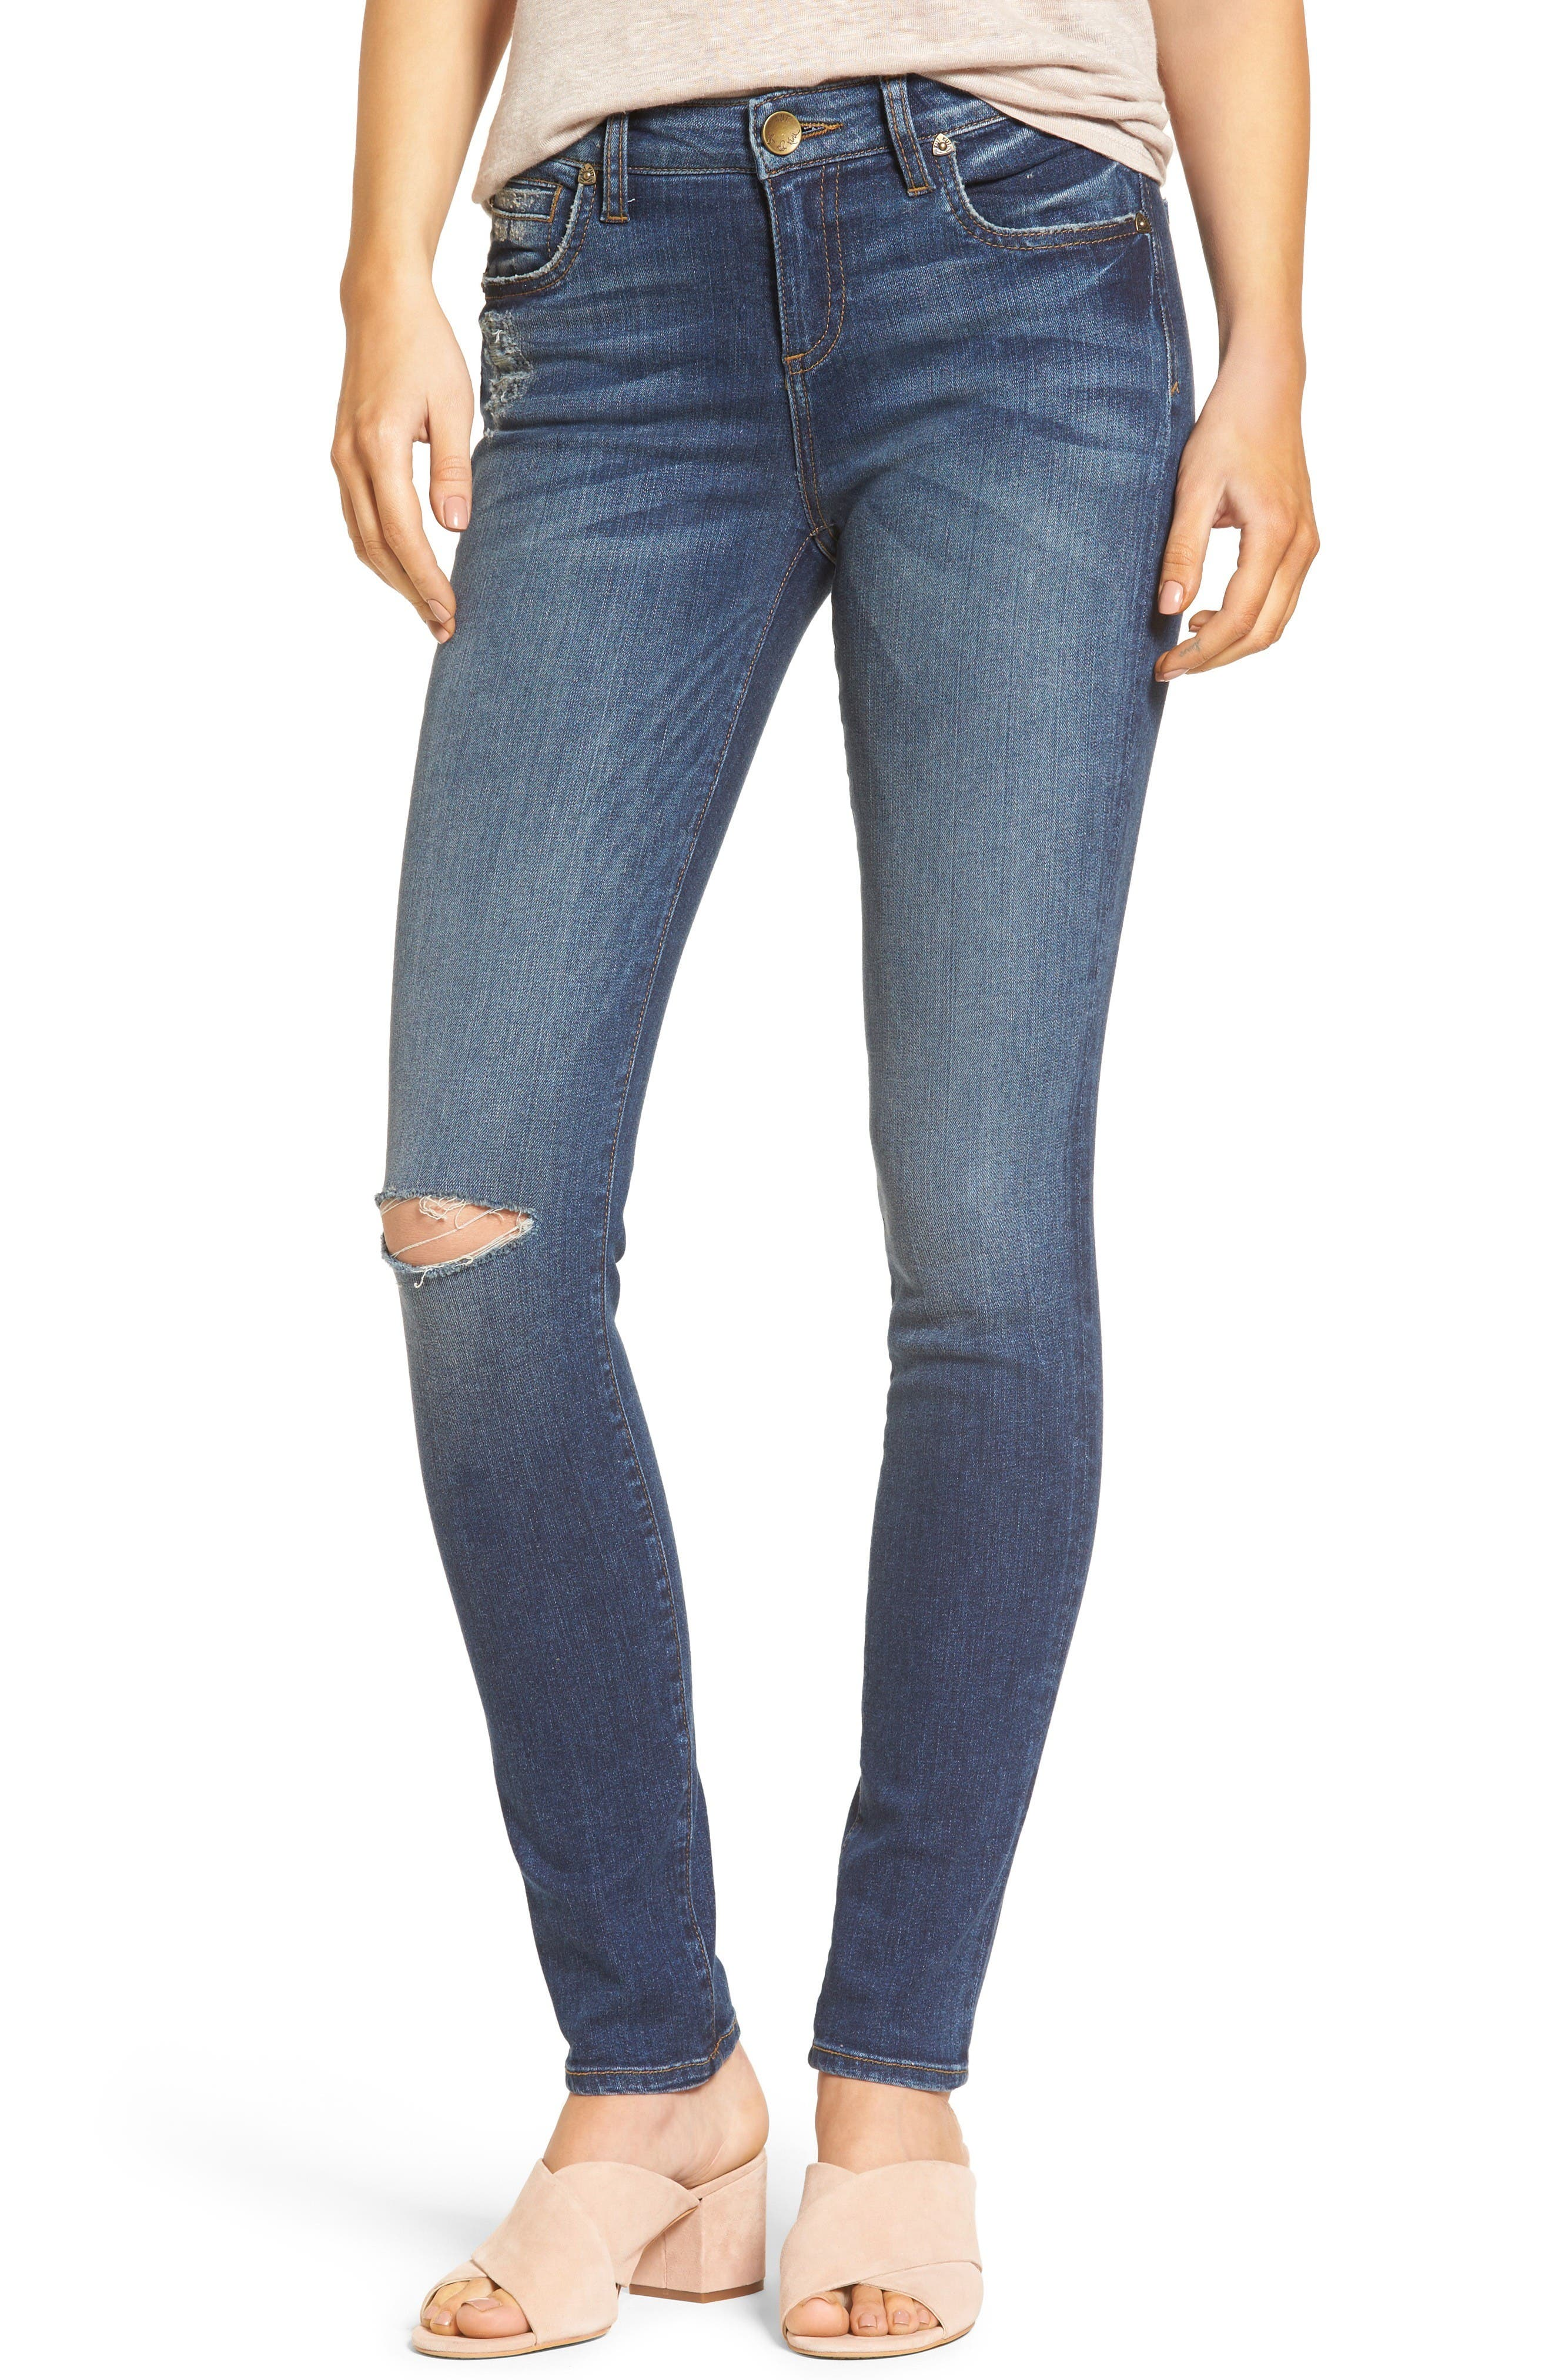 Main Image - KUT from the Kloth Diana Ripped Stretch Skinny Jeans (Valorous) (Regular & Petite)